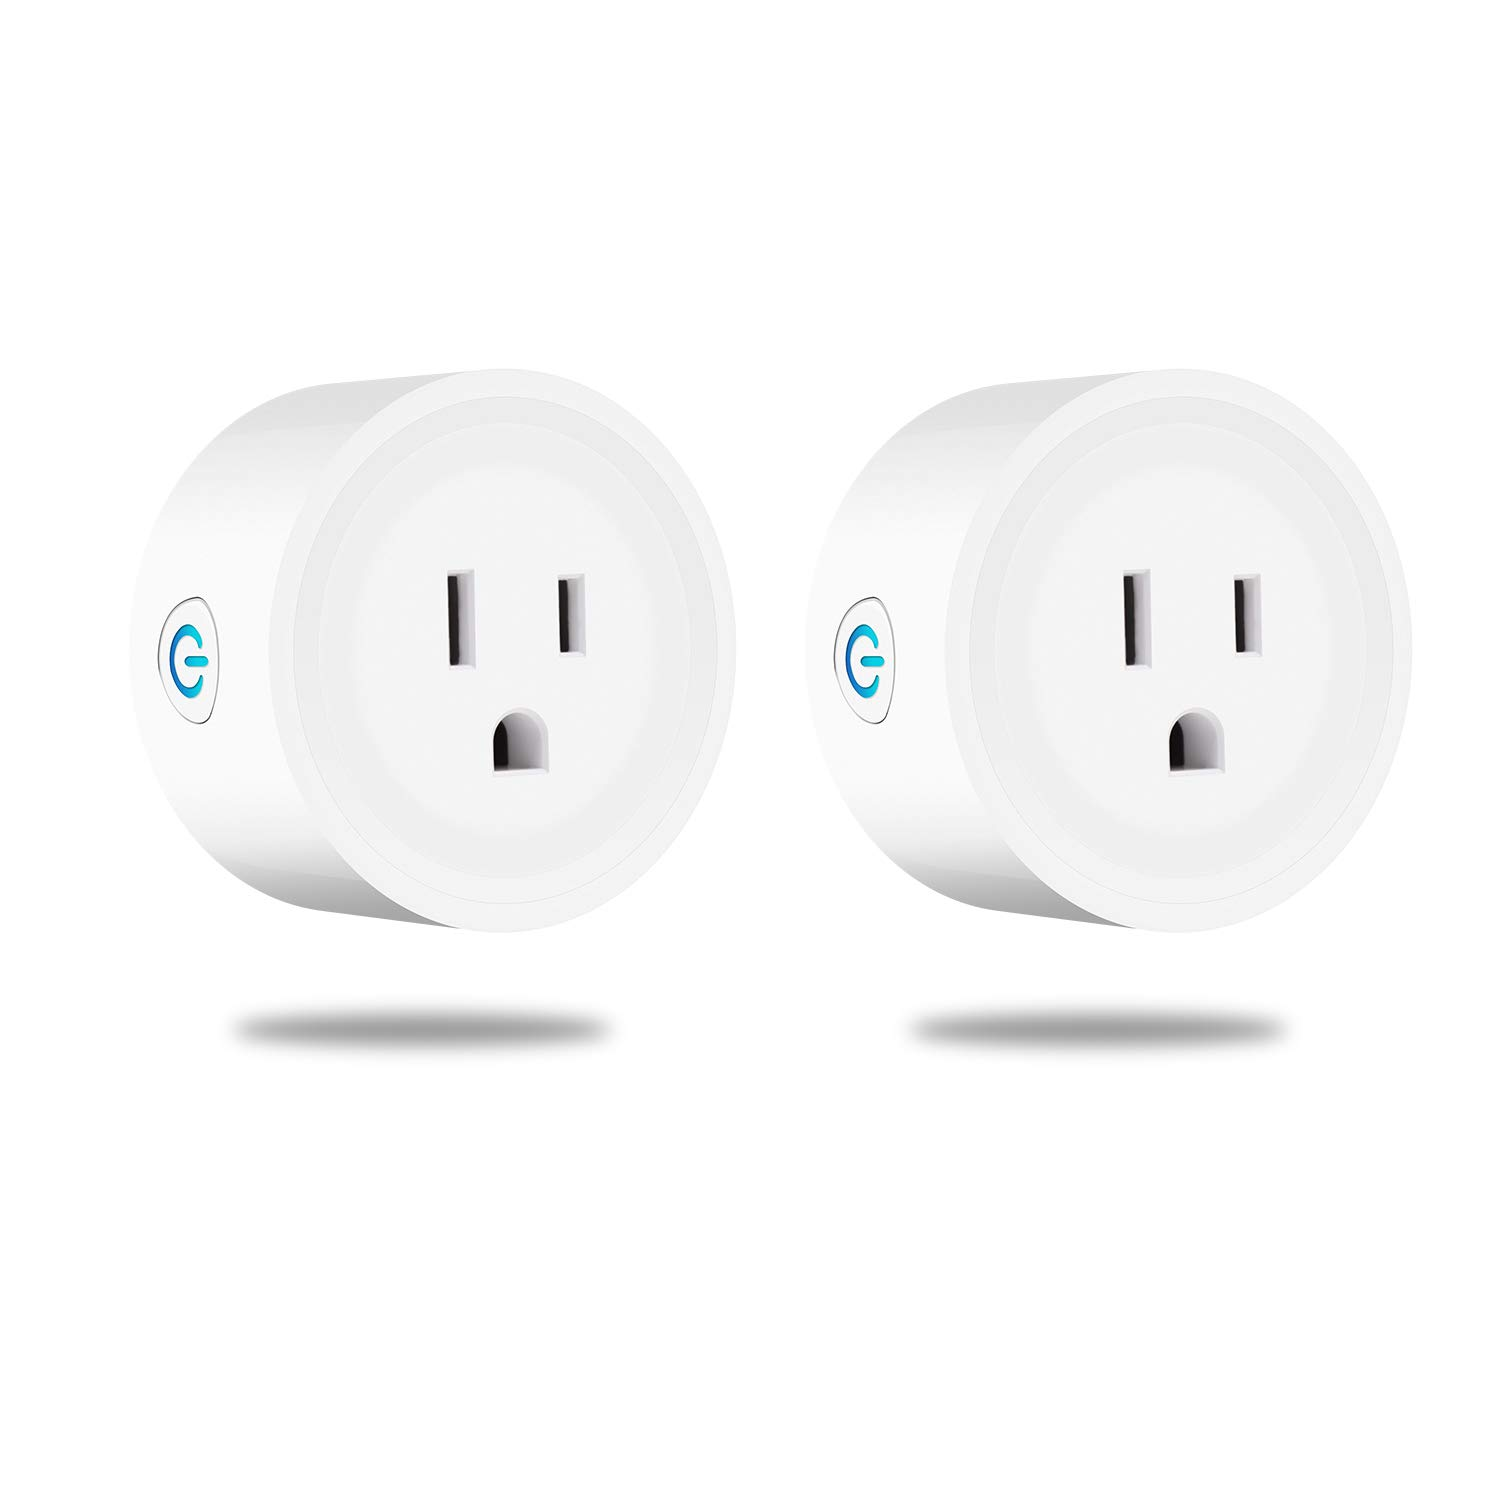 Wifi Smart Plug Mini Wifi Plug Outlet Timer Works with Alexa Echo Google Home and IFTTT, No Hub Required Alexa Smart Socket for Voice Remote Control your Home Assistant - 2 Pack